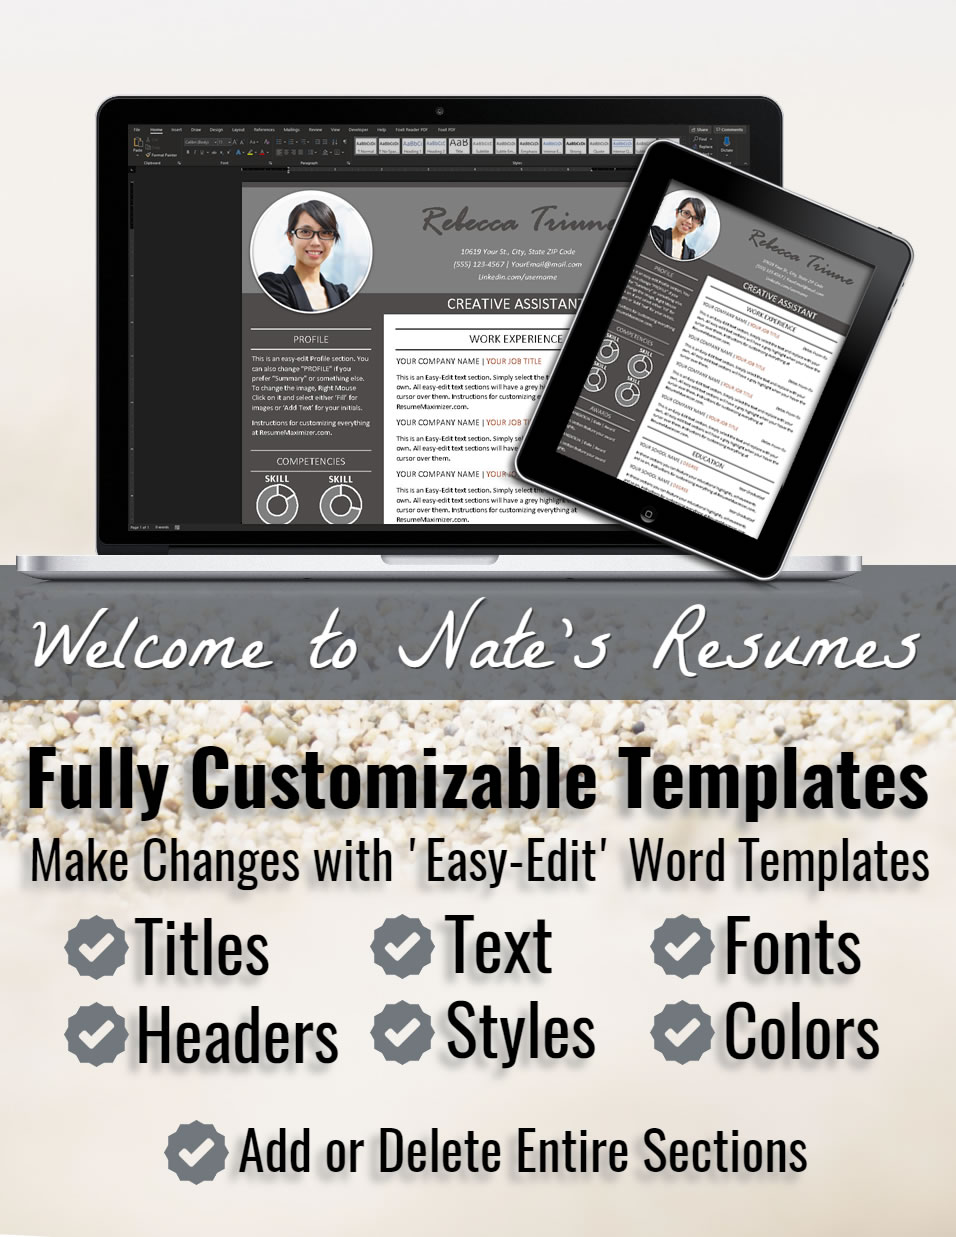 Leading Edge - Make-Easy-Edits-to-Templates-LONG